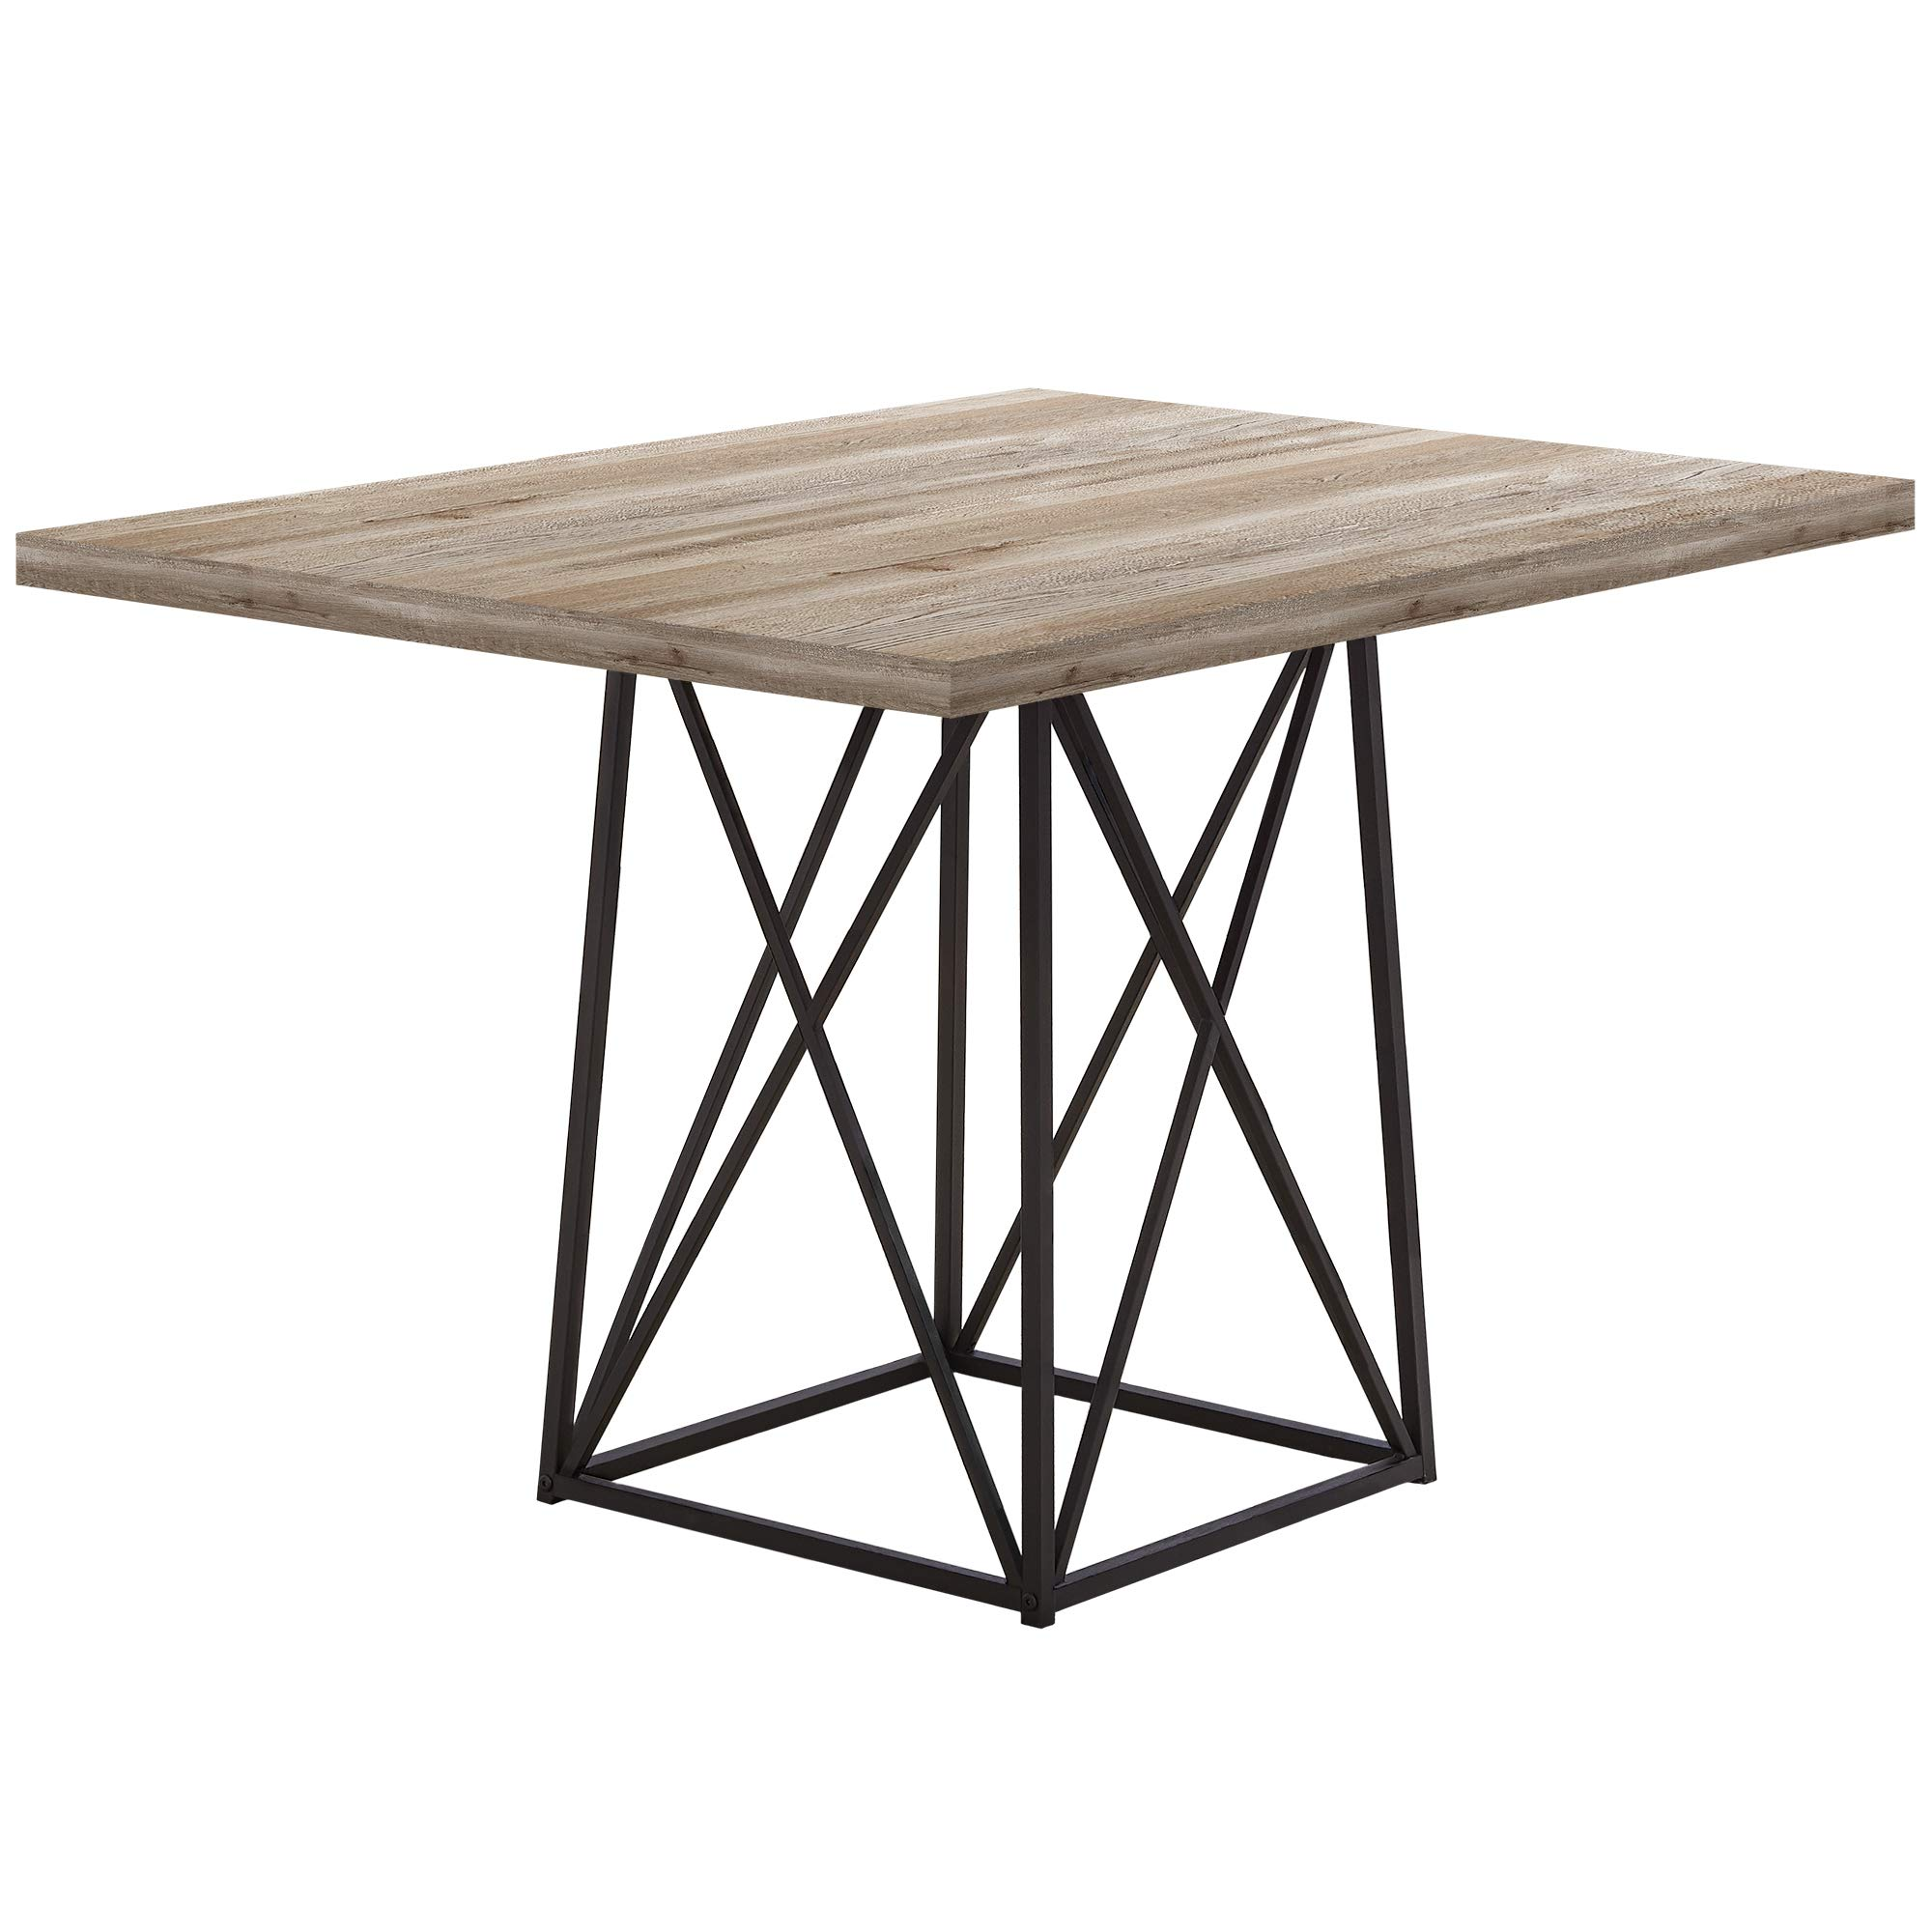 Monarch Specialties I I 1109 36''X 48'' / Taupe Reclaimed Wood-Look/Black Dining Table Metal Base, 36'' x 48'', by Monarch Specialties